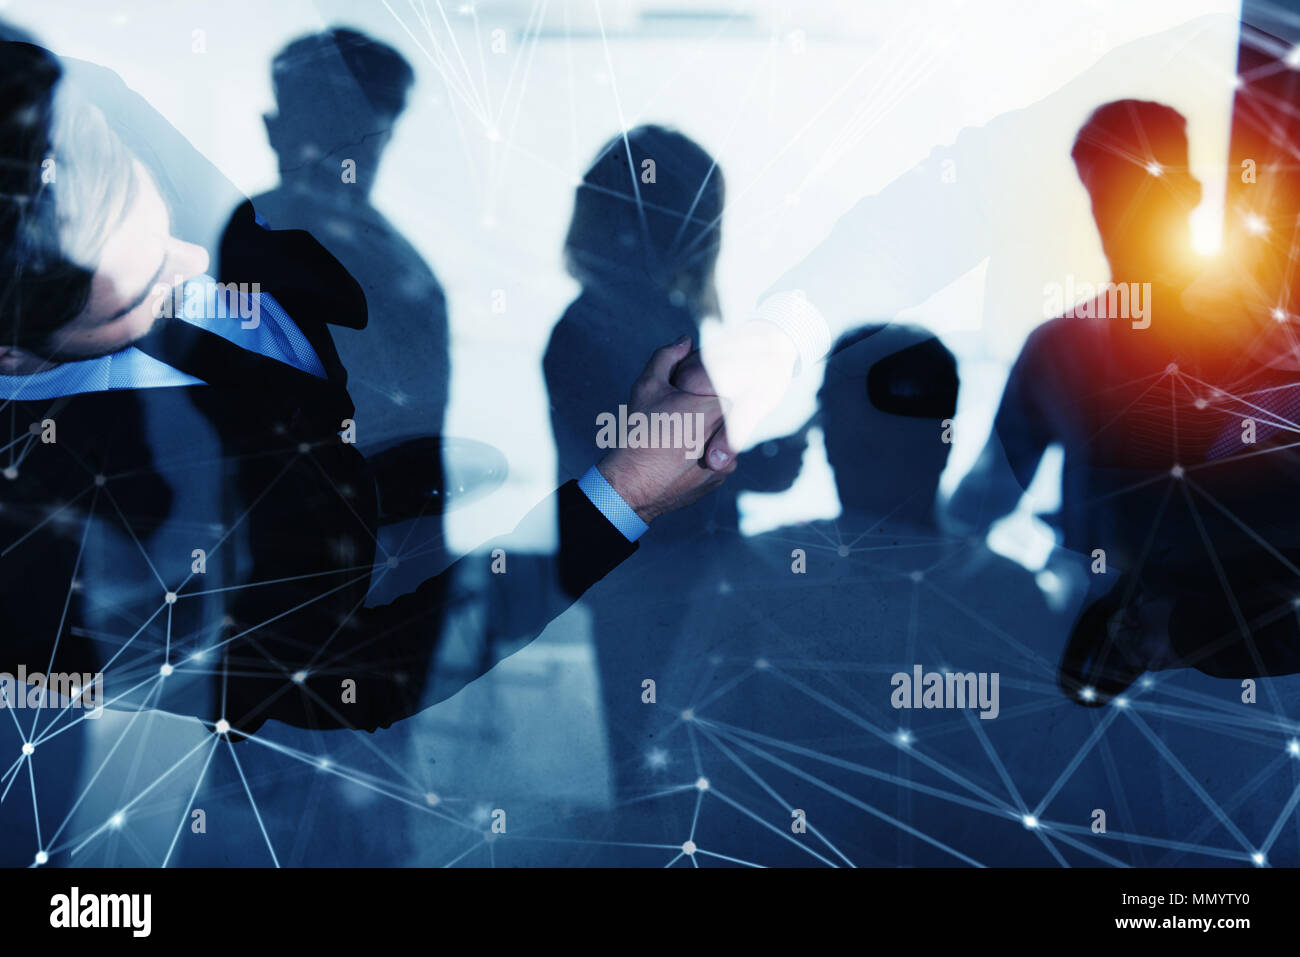 Handshaking business person in office with network effect. concept of teamwork and partnership. double exposure - Stock Image